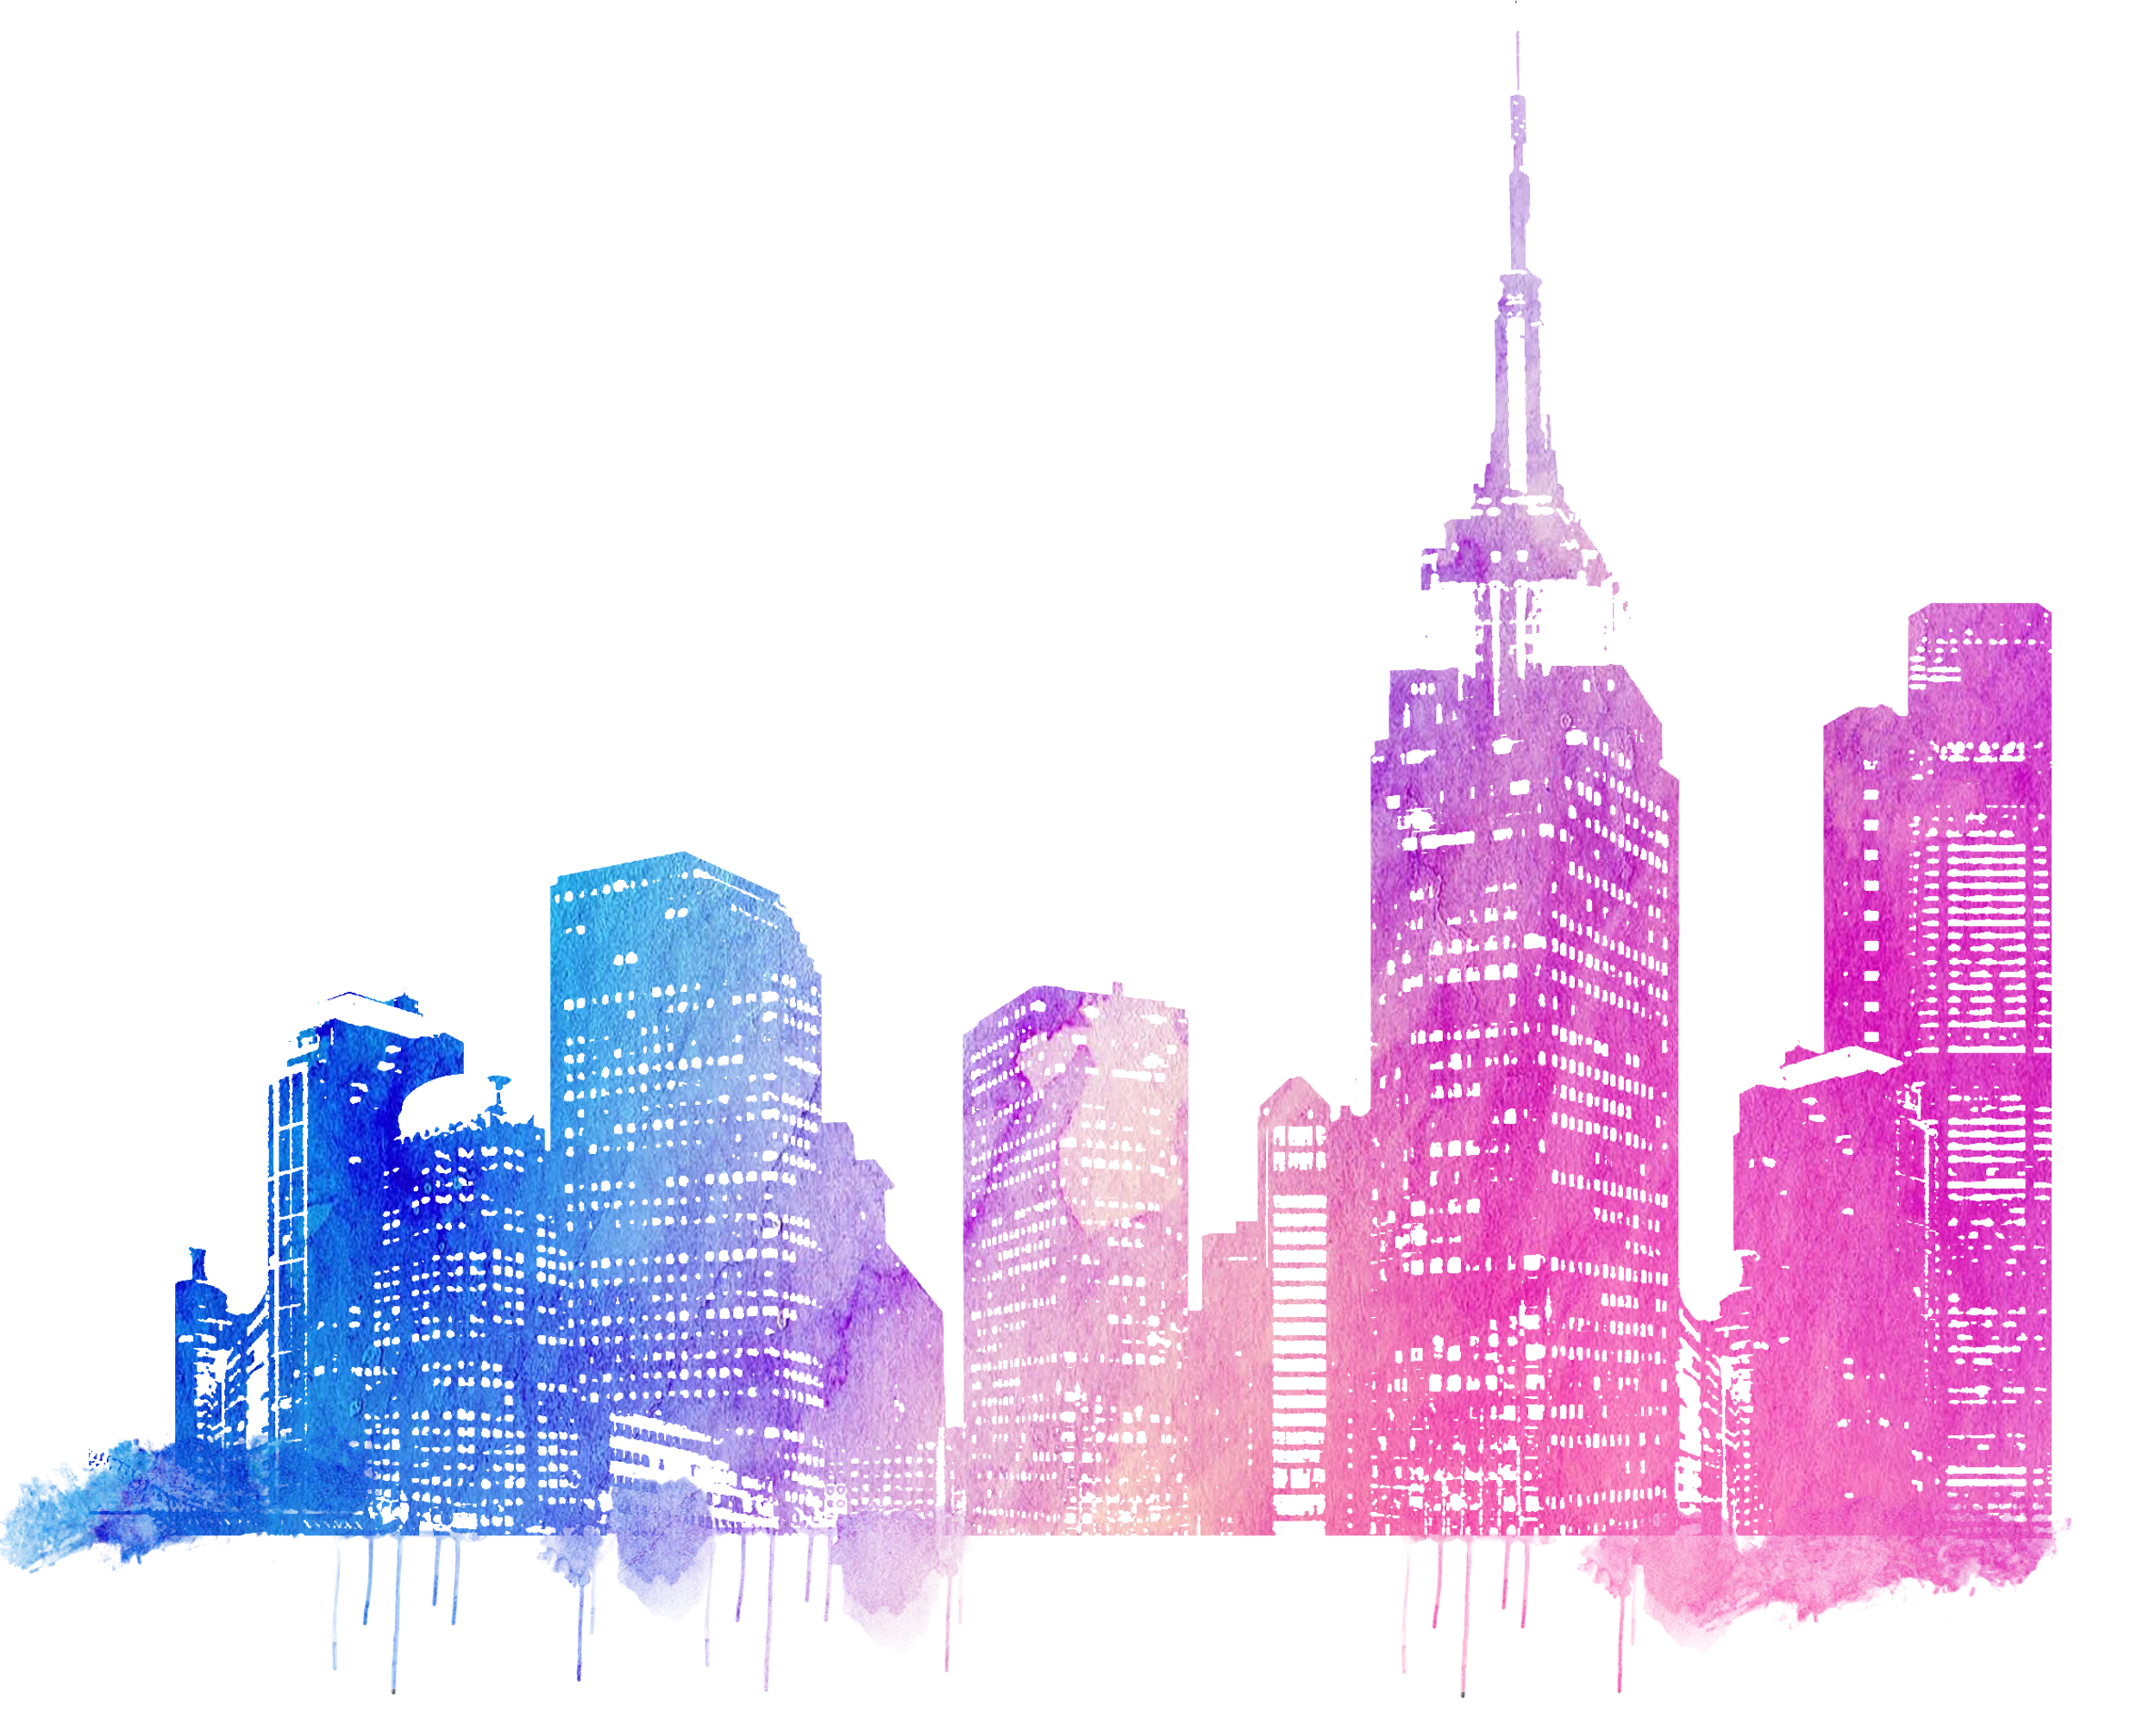 Cities drawing. Skylines colorful city skyline